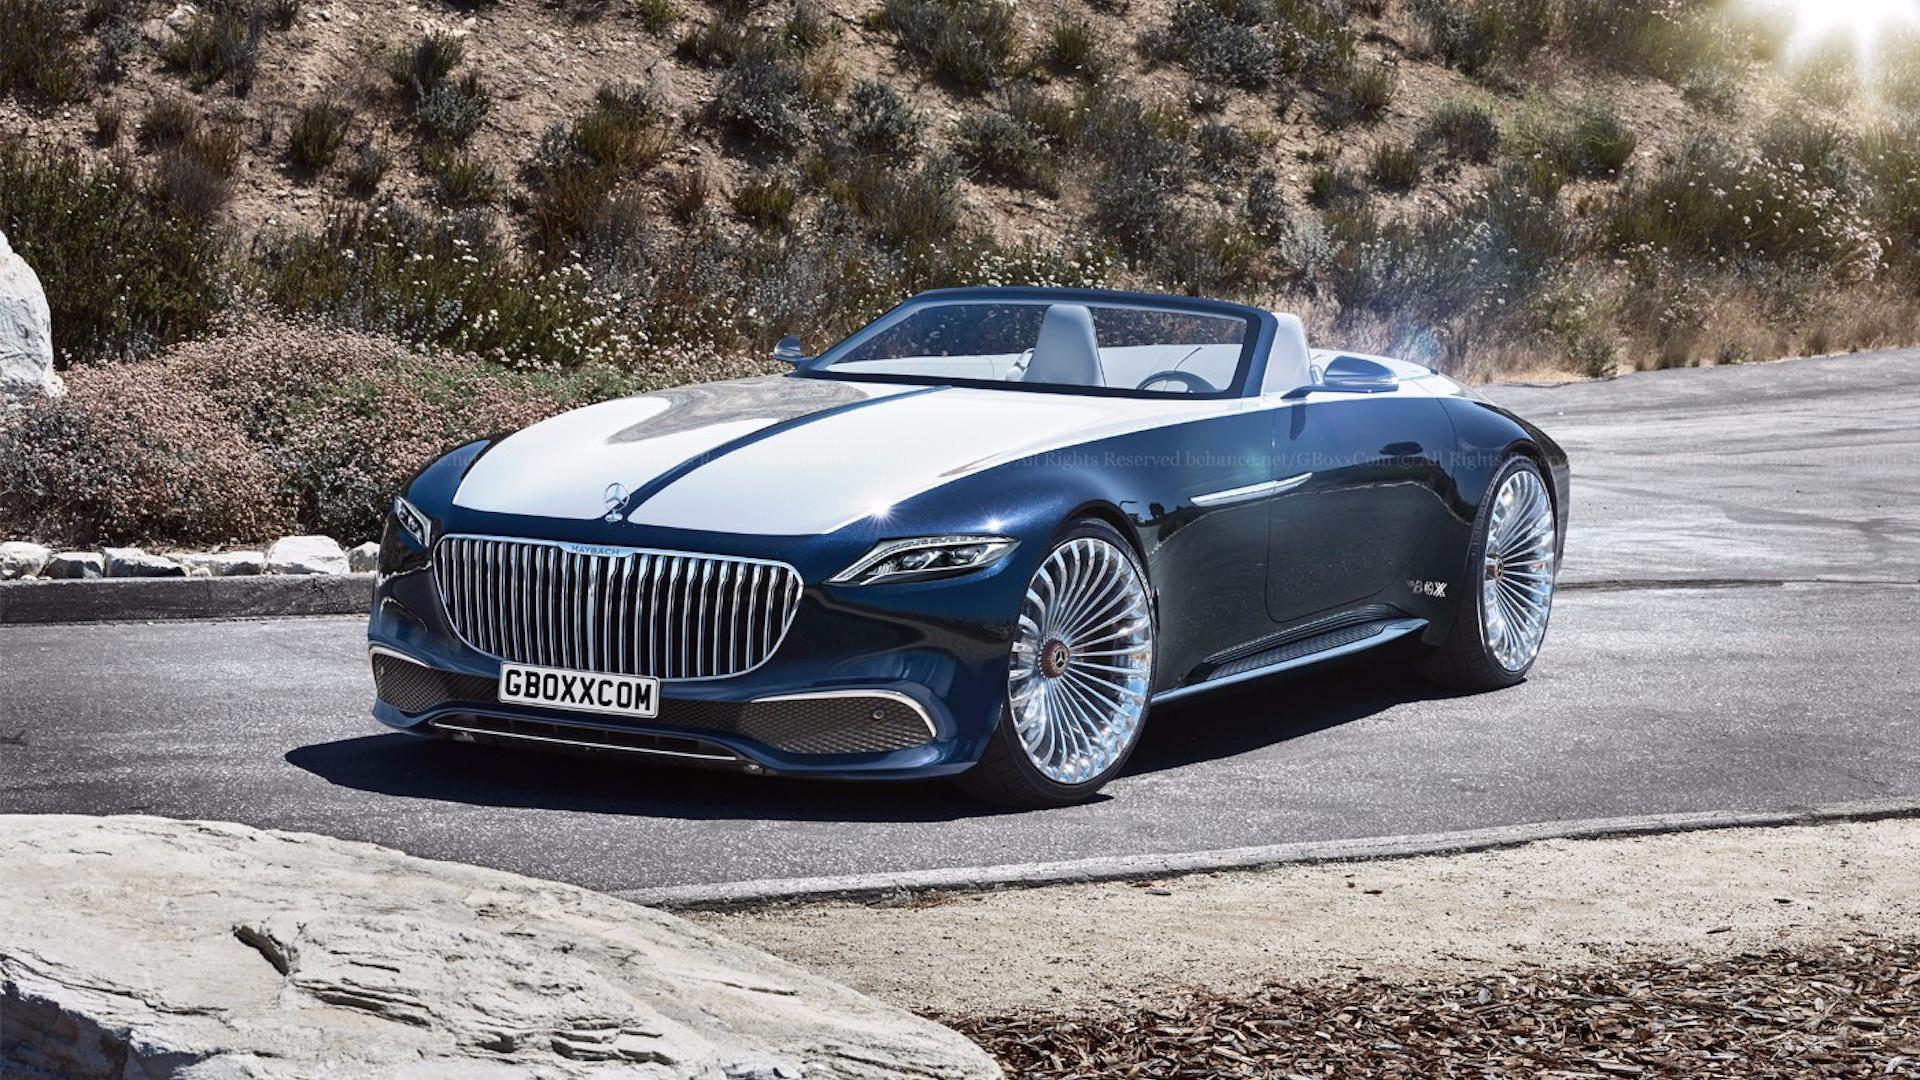 mercedes-maybach 6 cabriolet looks stunning with production cues